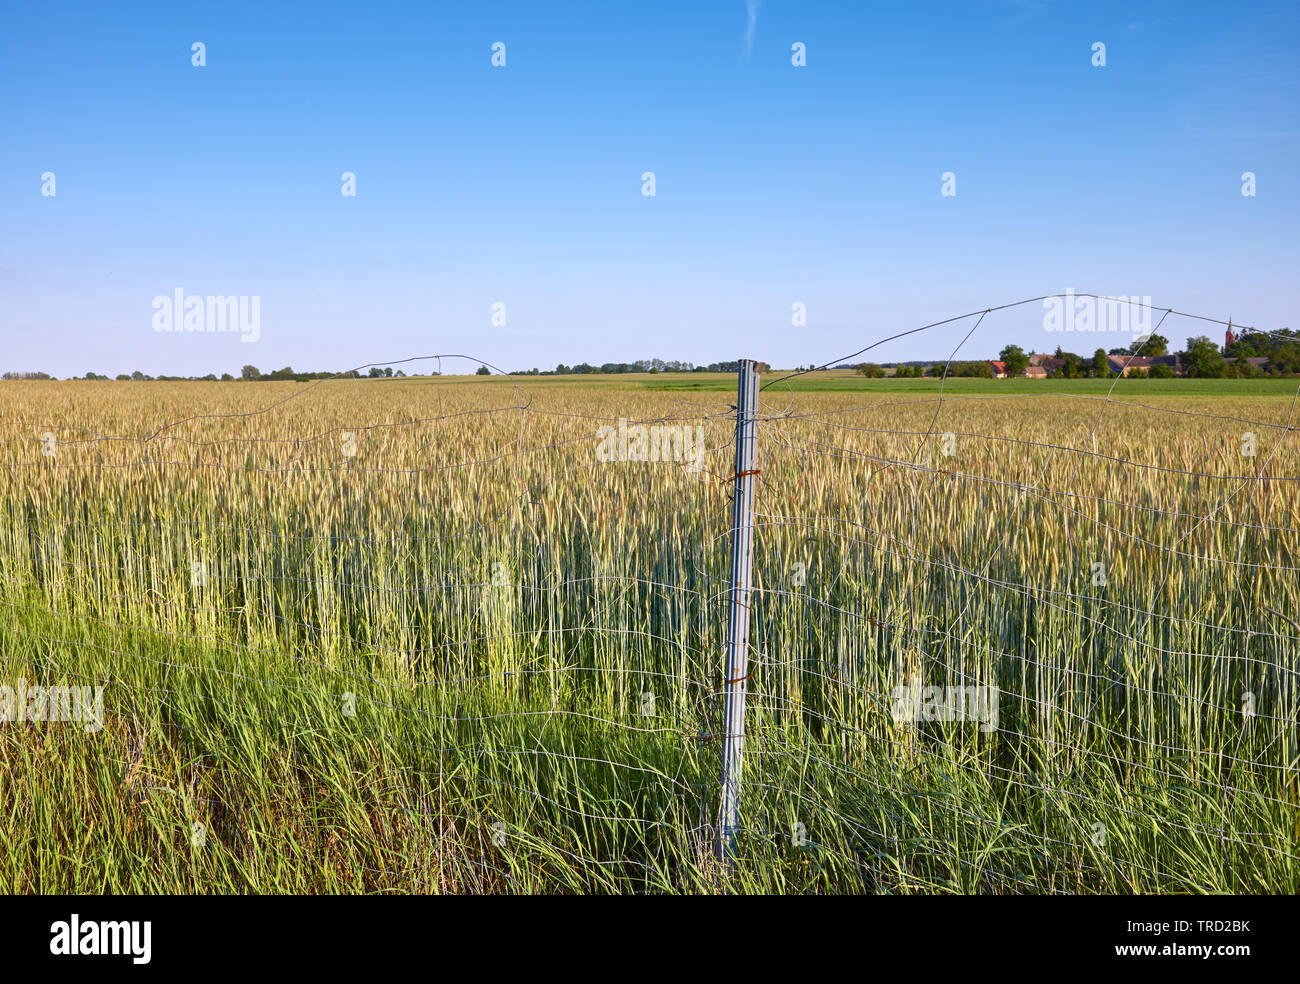 Field of rye behind a wire fence. - Stock Image